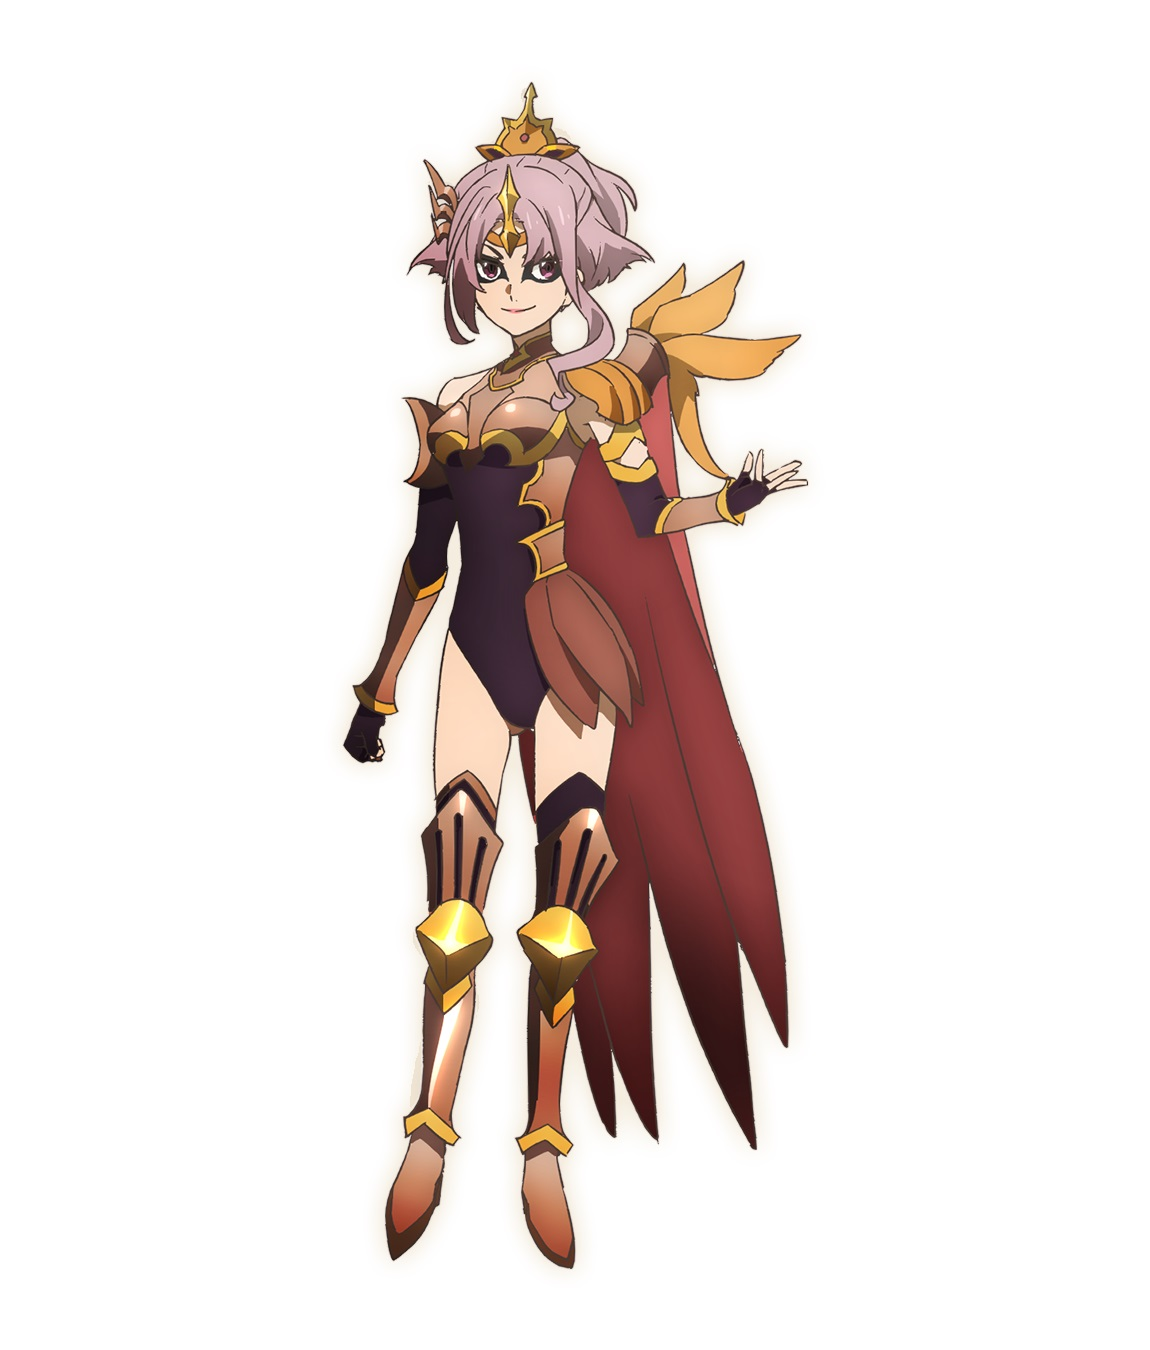 A character setting of Reda from the SEVEN KNIGHTS REVOLUTION: Hero Successor TV anime. Reda appears as a small-framed, pink-haired woman in form-revealing sorcerous armor and a cape. Her eyes are outlined with dark eye-liner, and she sports a villainous smirk.